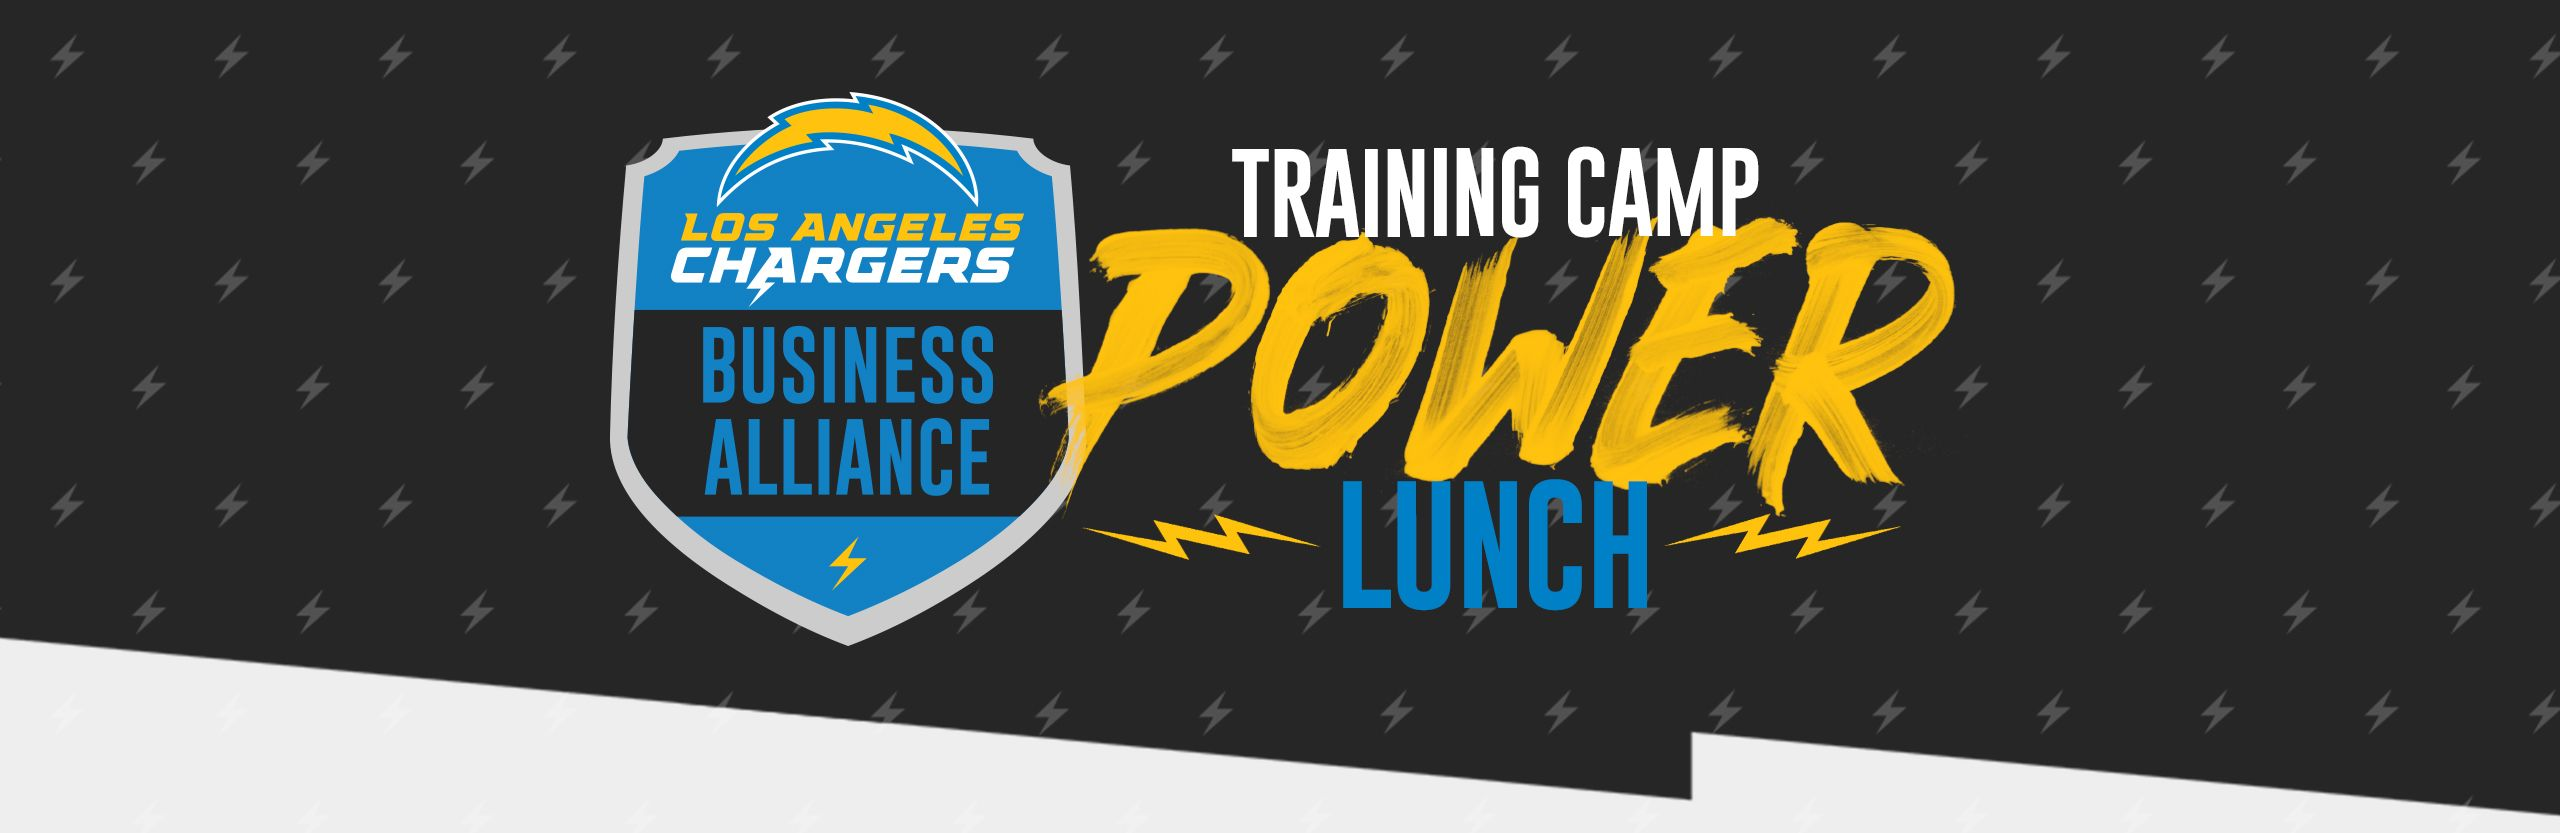 200723_Business_Alliance_TC_Power_Lunch_Site_Header